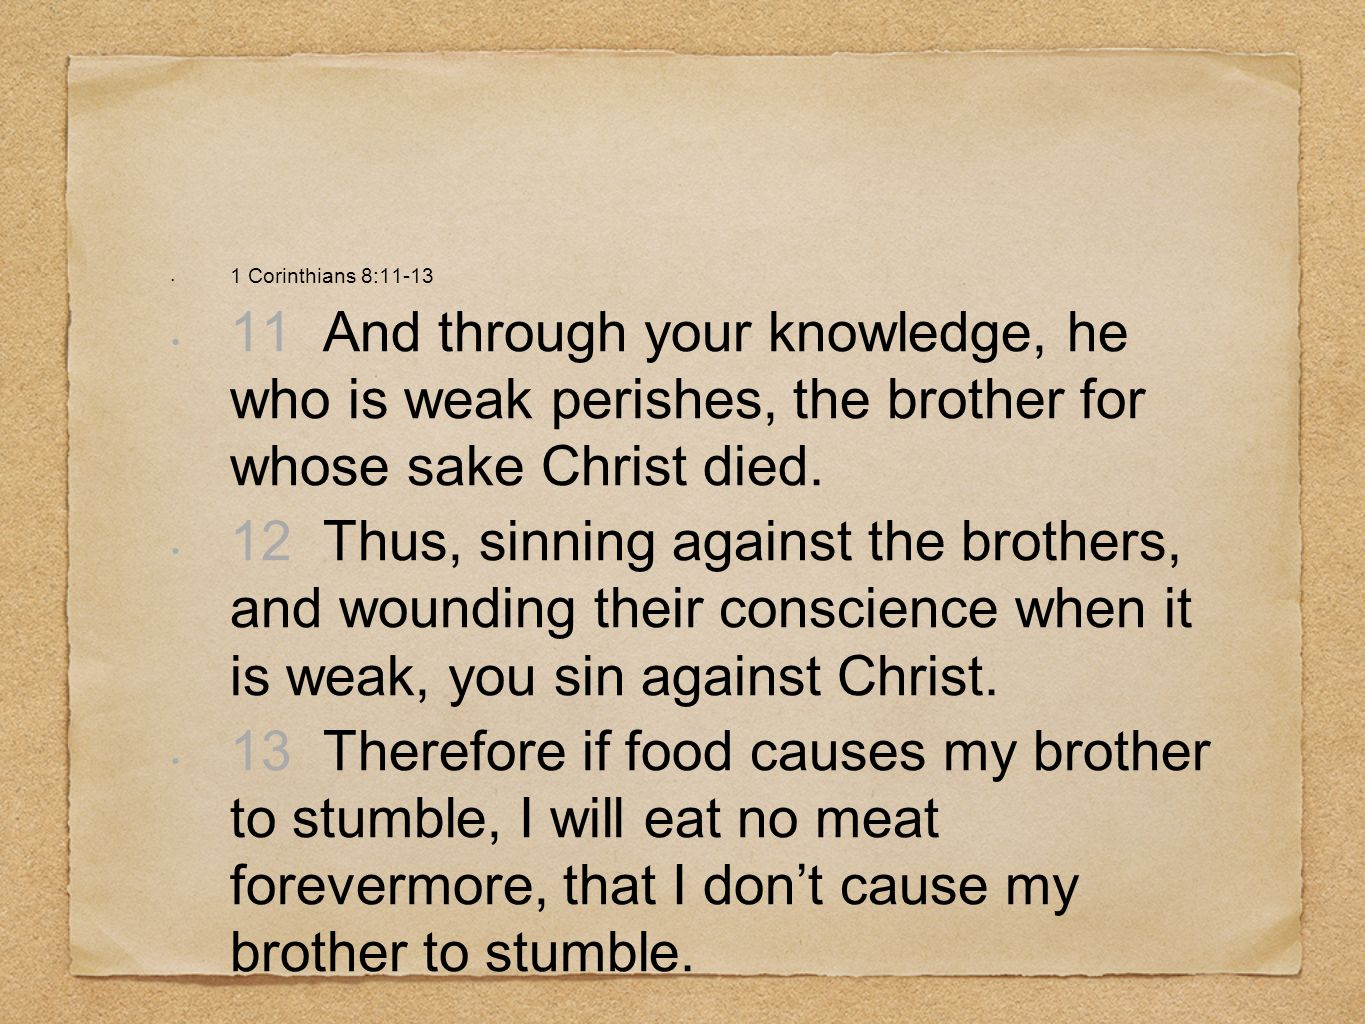 1 Corinthians 8:11-1311 And through your knowledge, he who is weak perishes, the brother for whose sake Christ died.